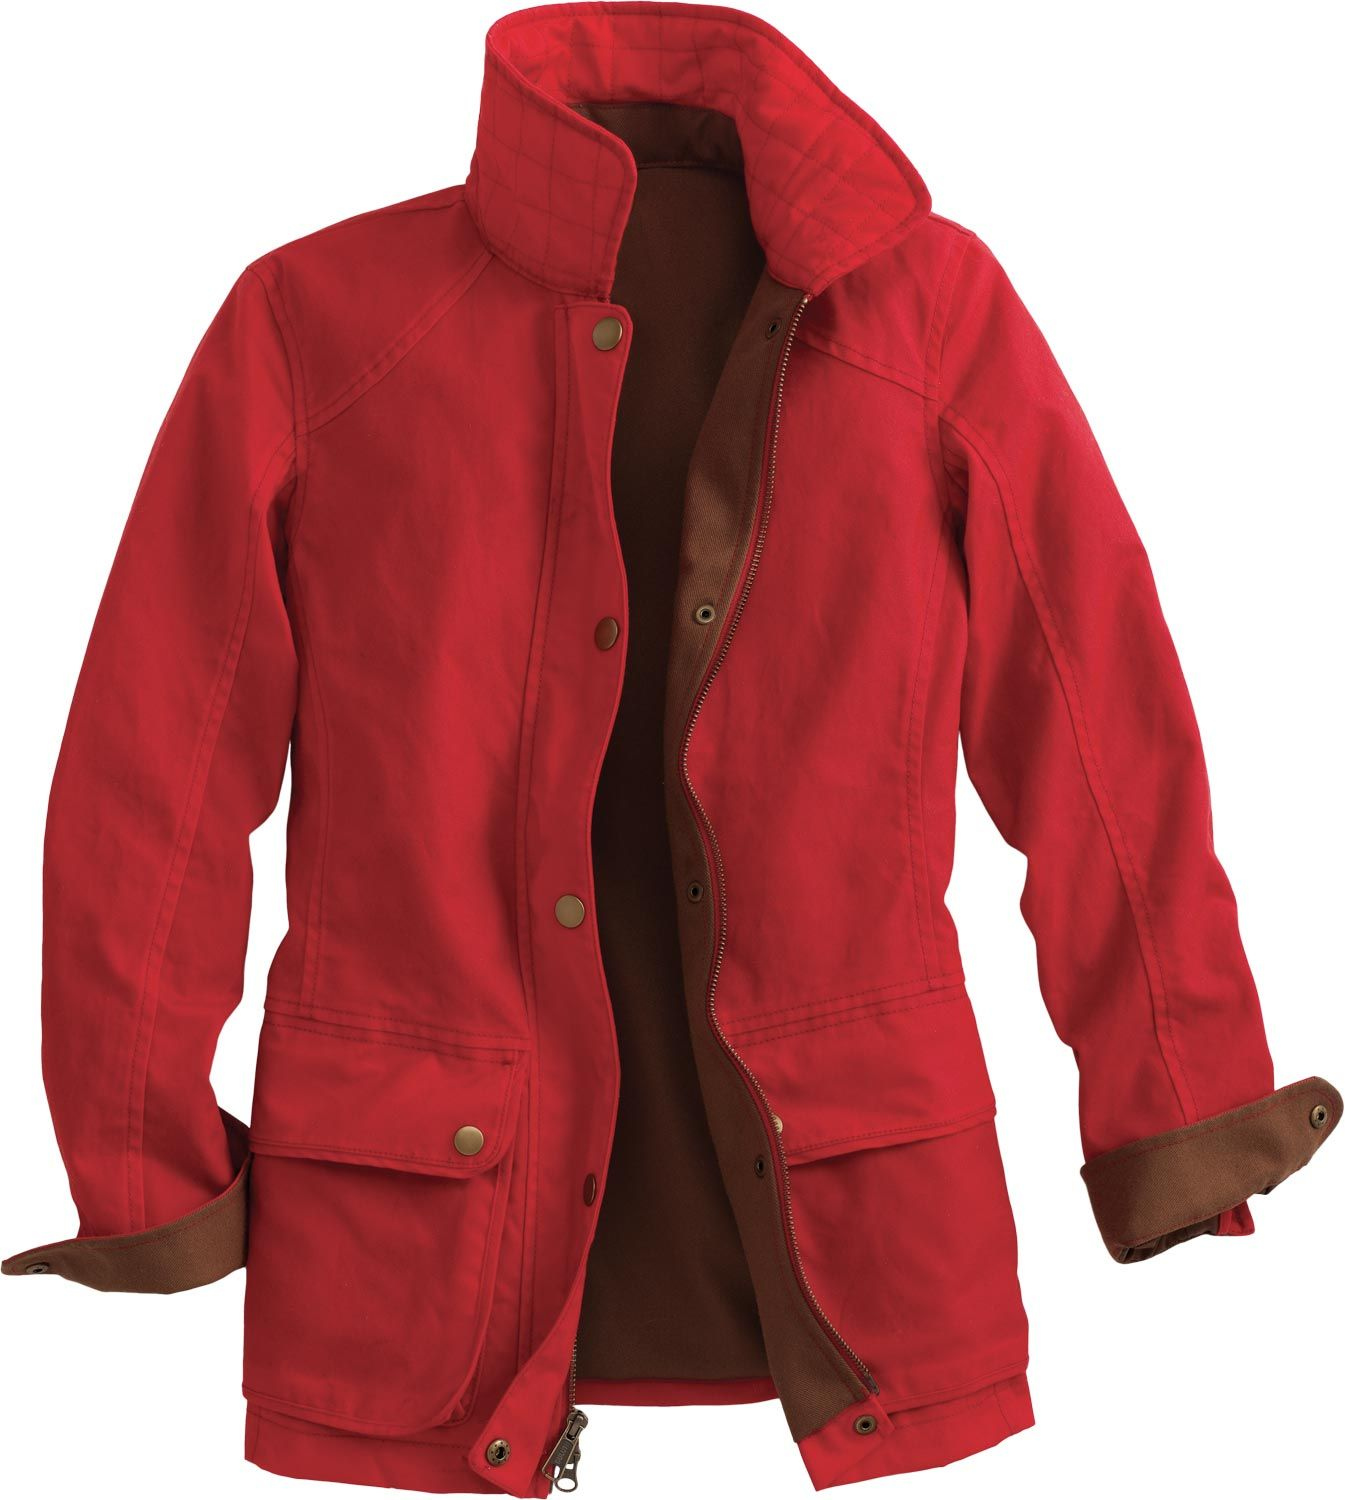 Duluth waxed cotton rain jacket, red